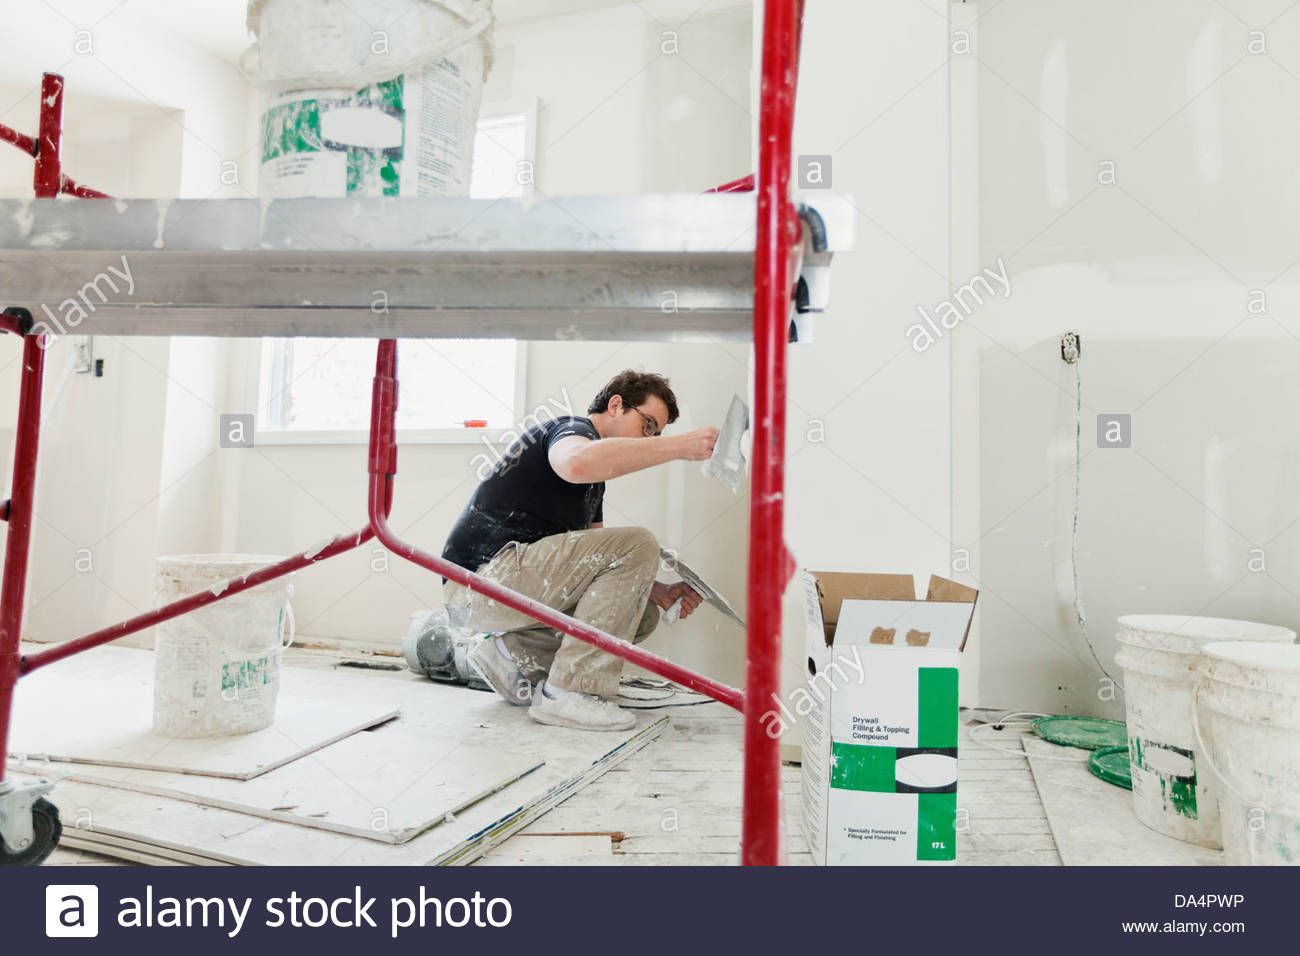 Tradesman plastering drywall with trowel in home Stock Photo